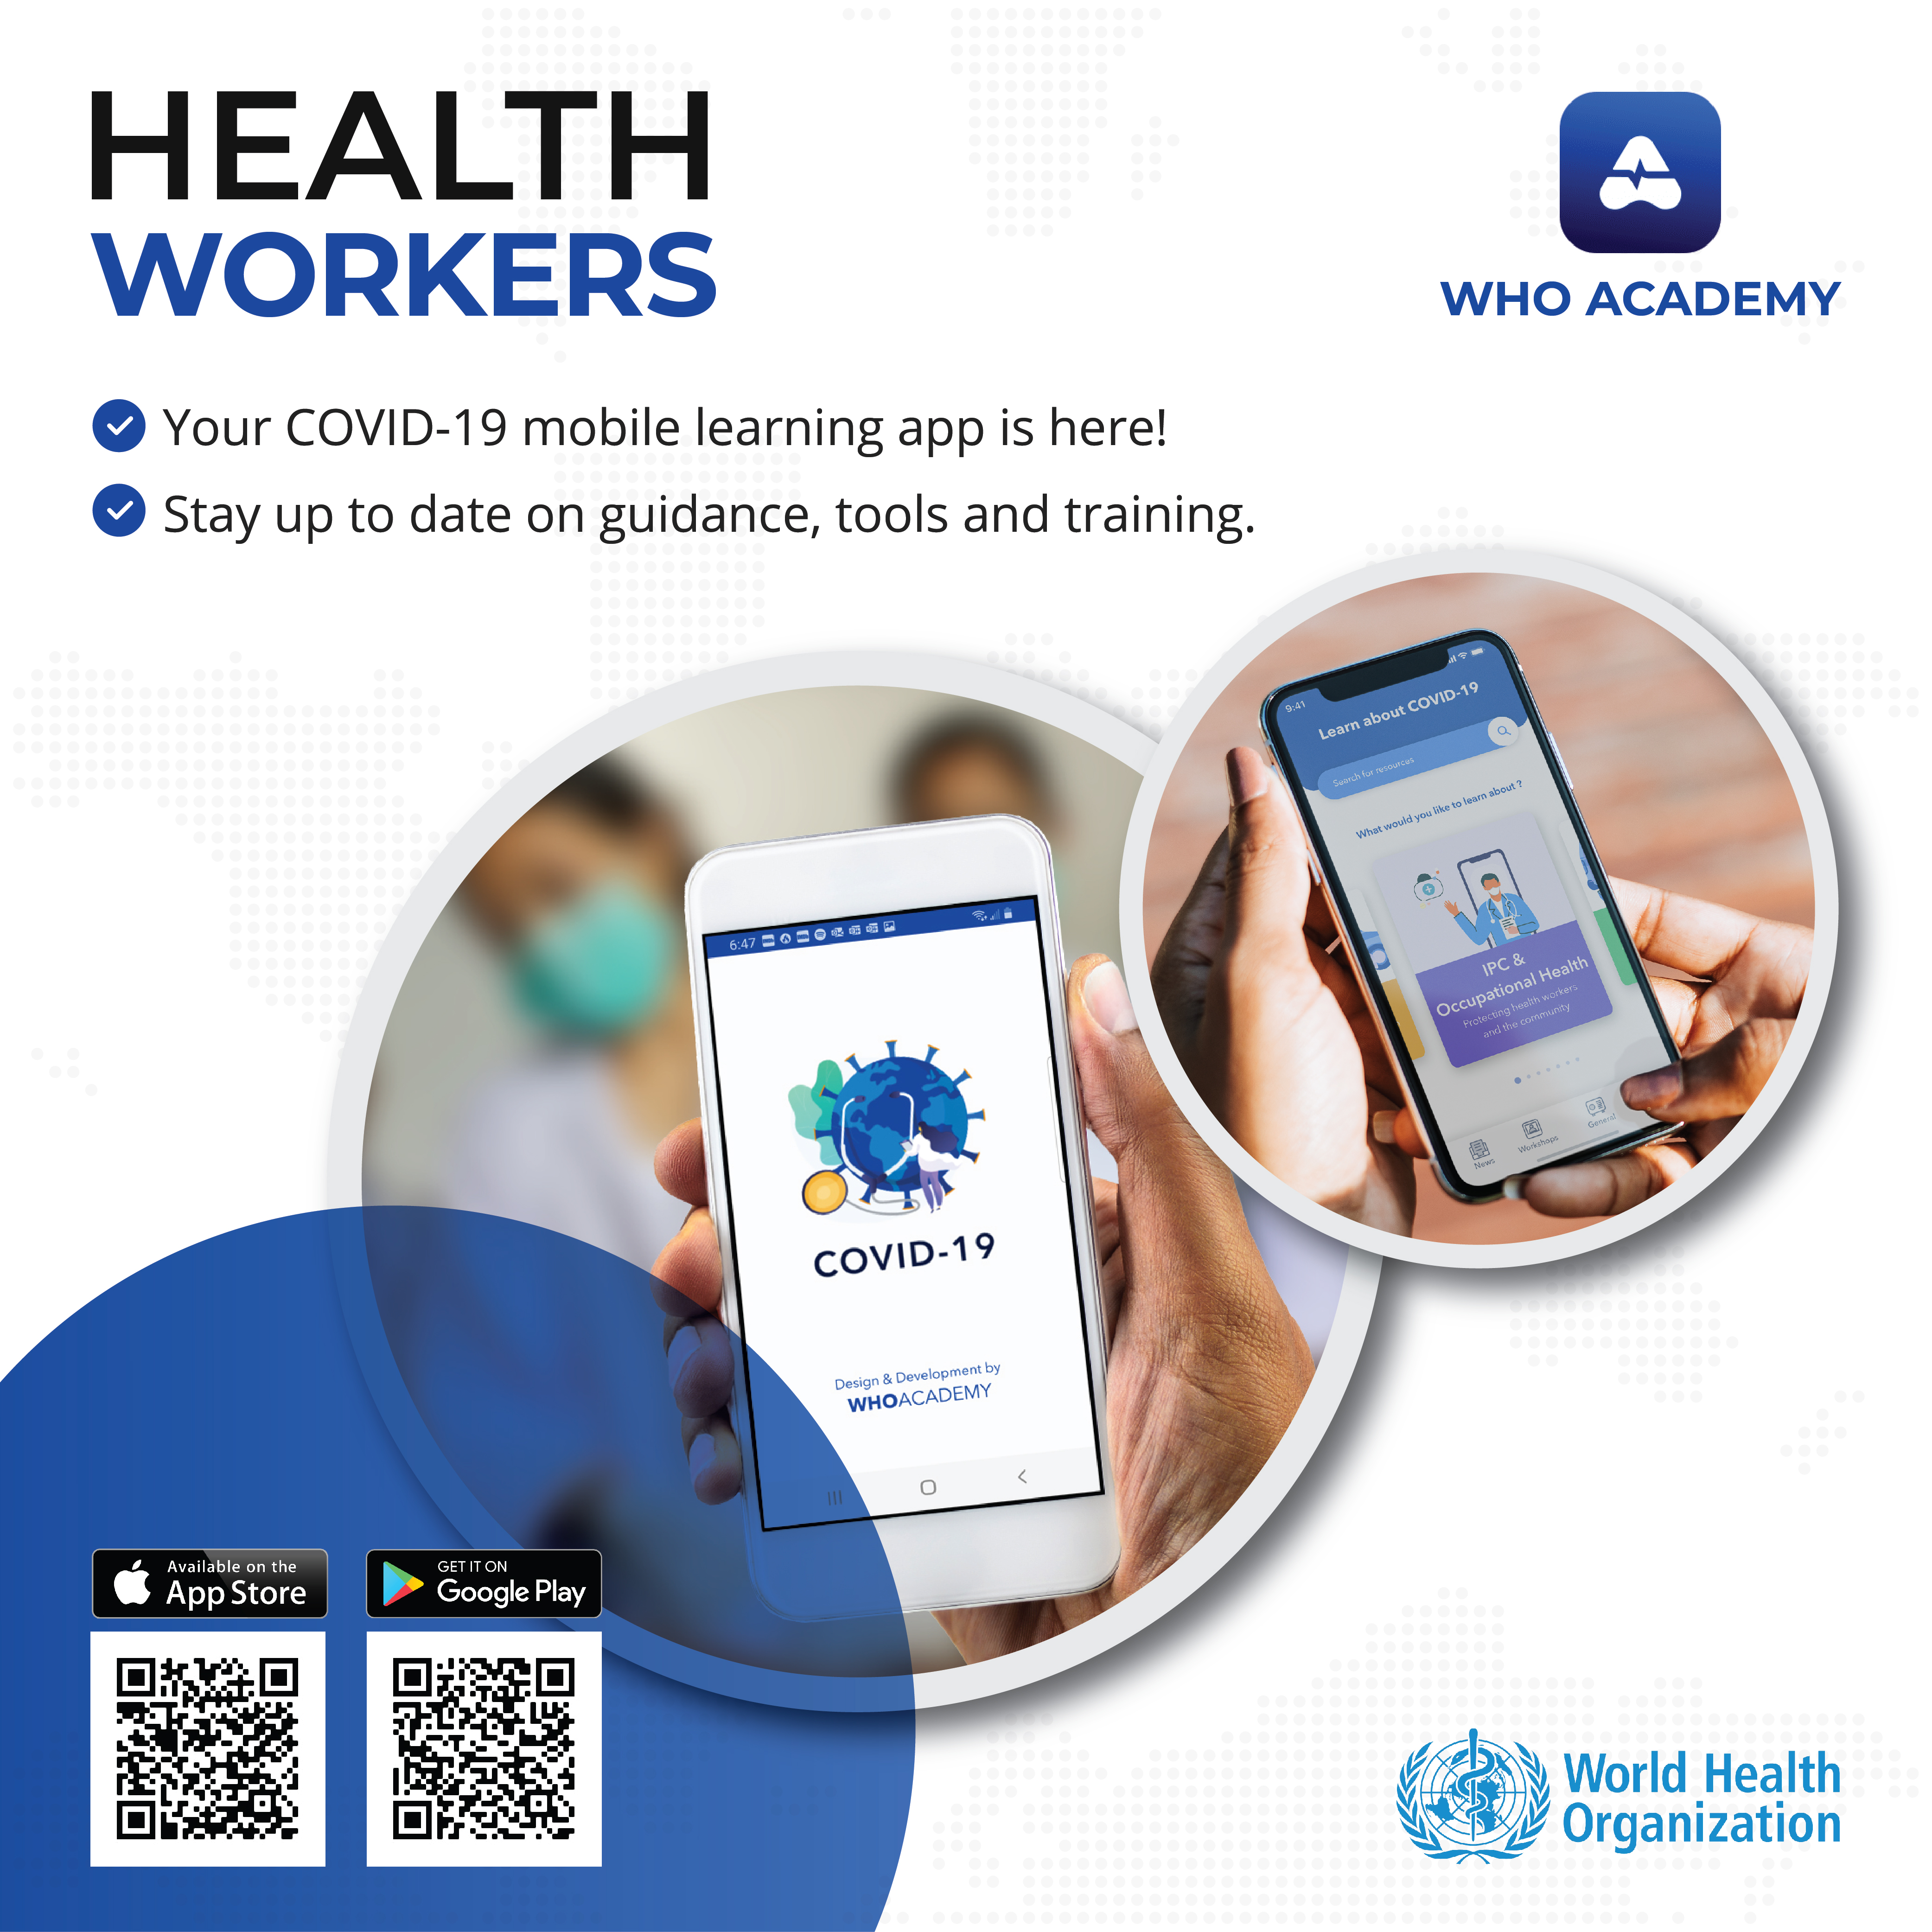 World Health Organization launches the new WHO Academy app